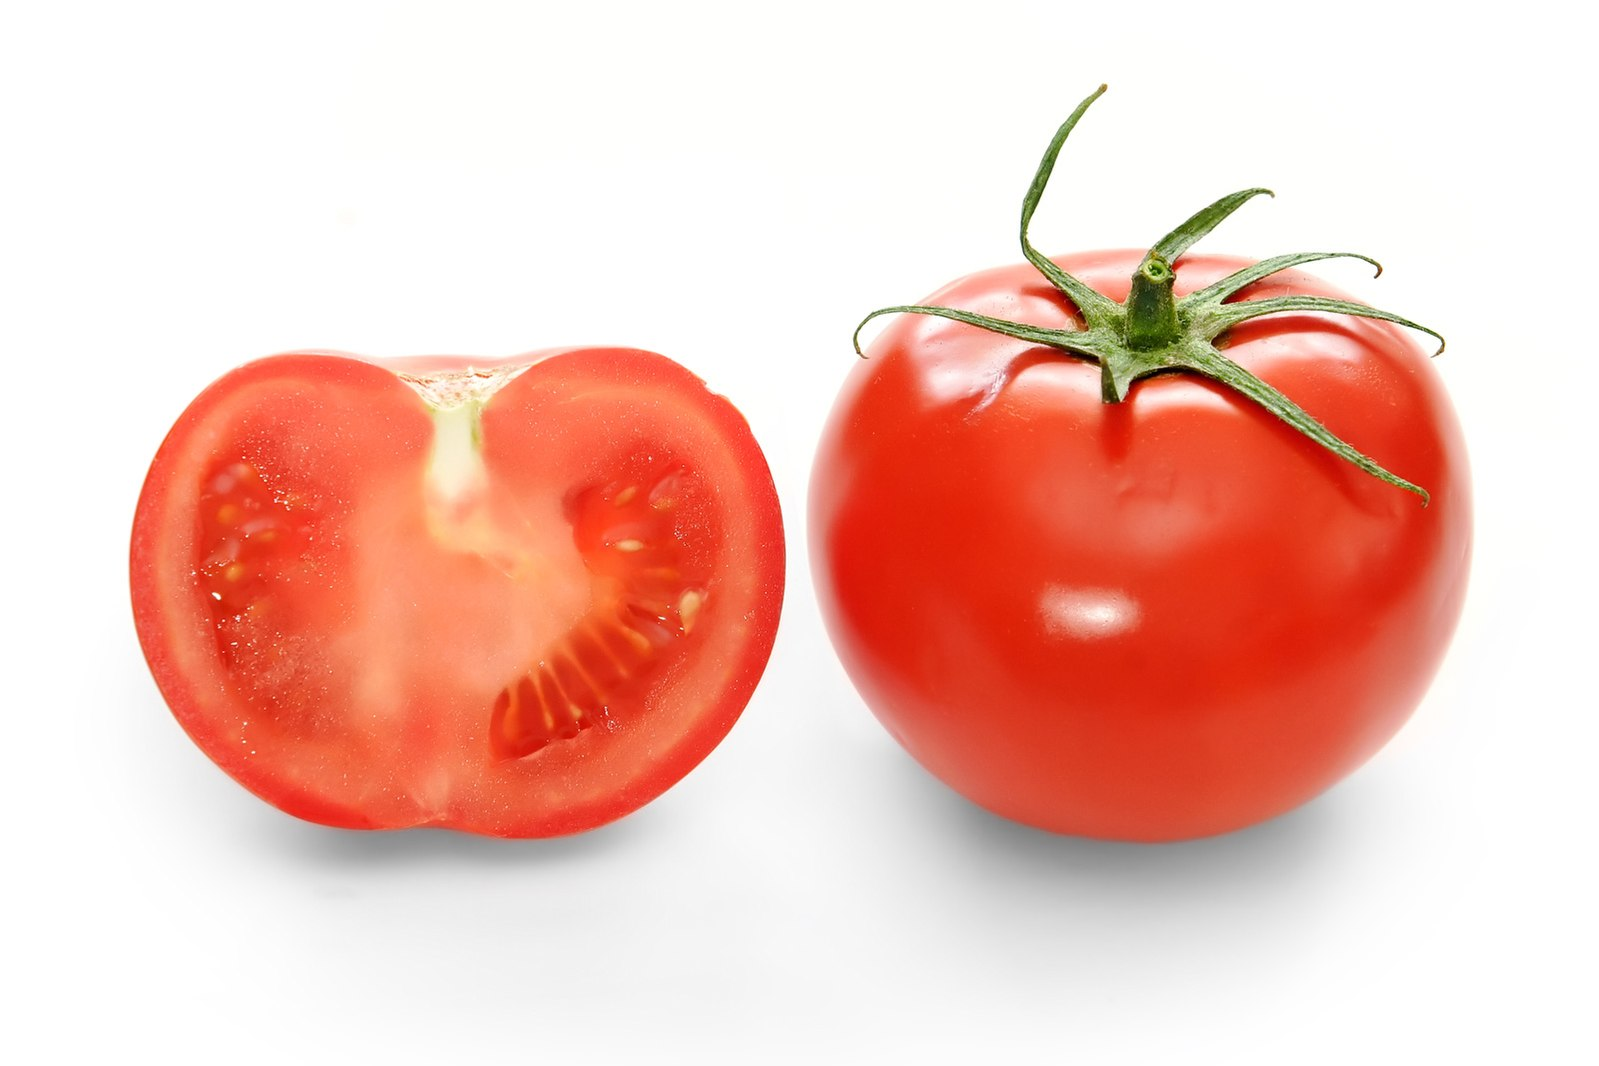 Tomato Wuppertal Tomato The Complete Information And Online Sale With Free